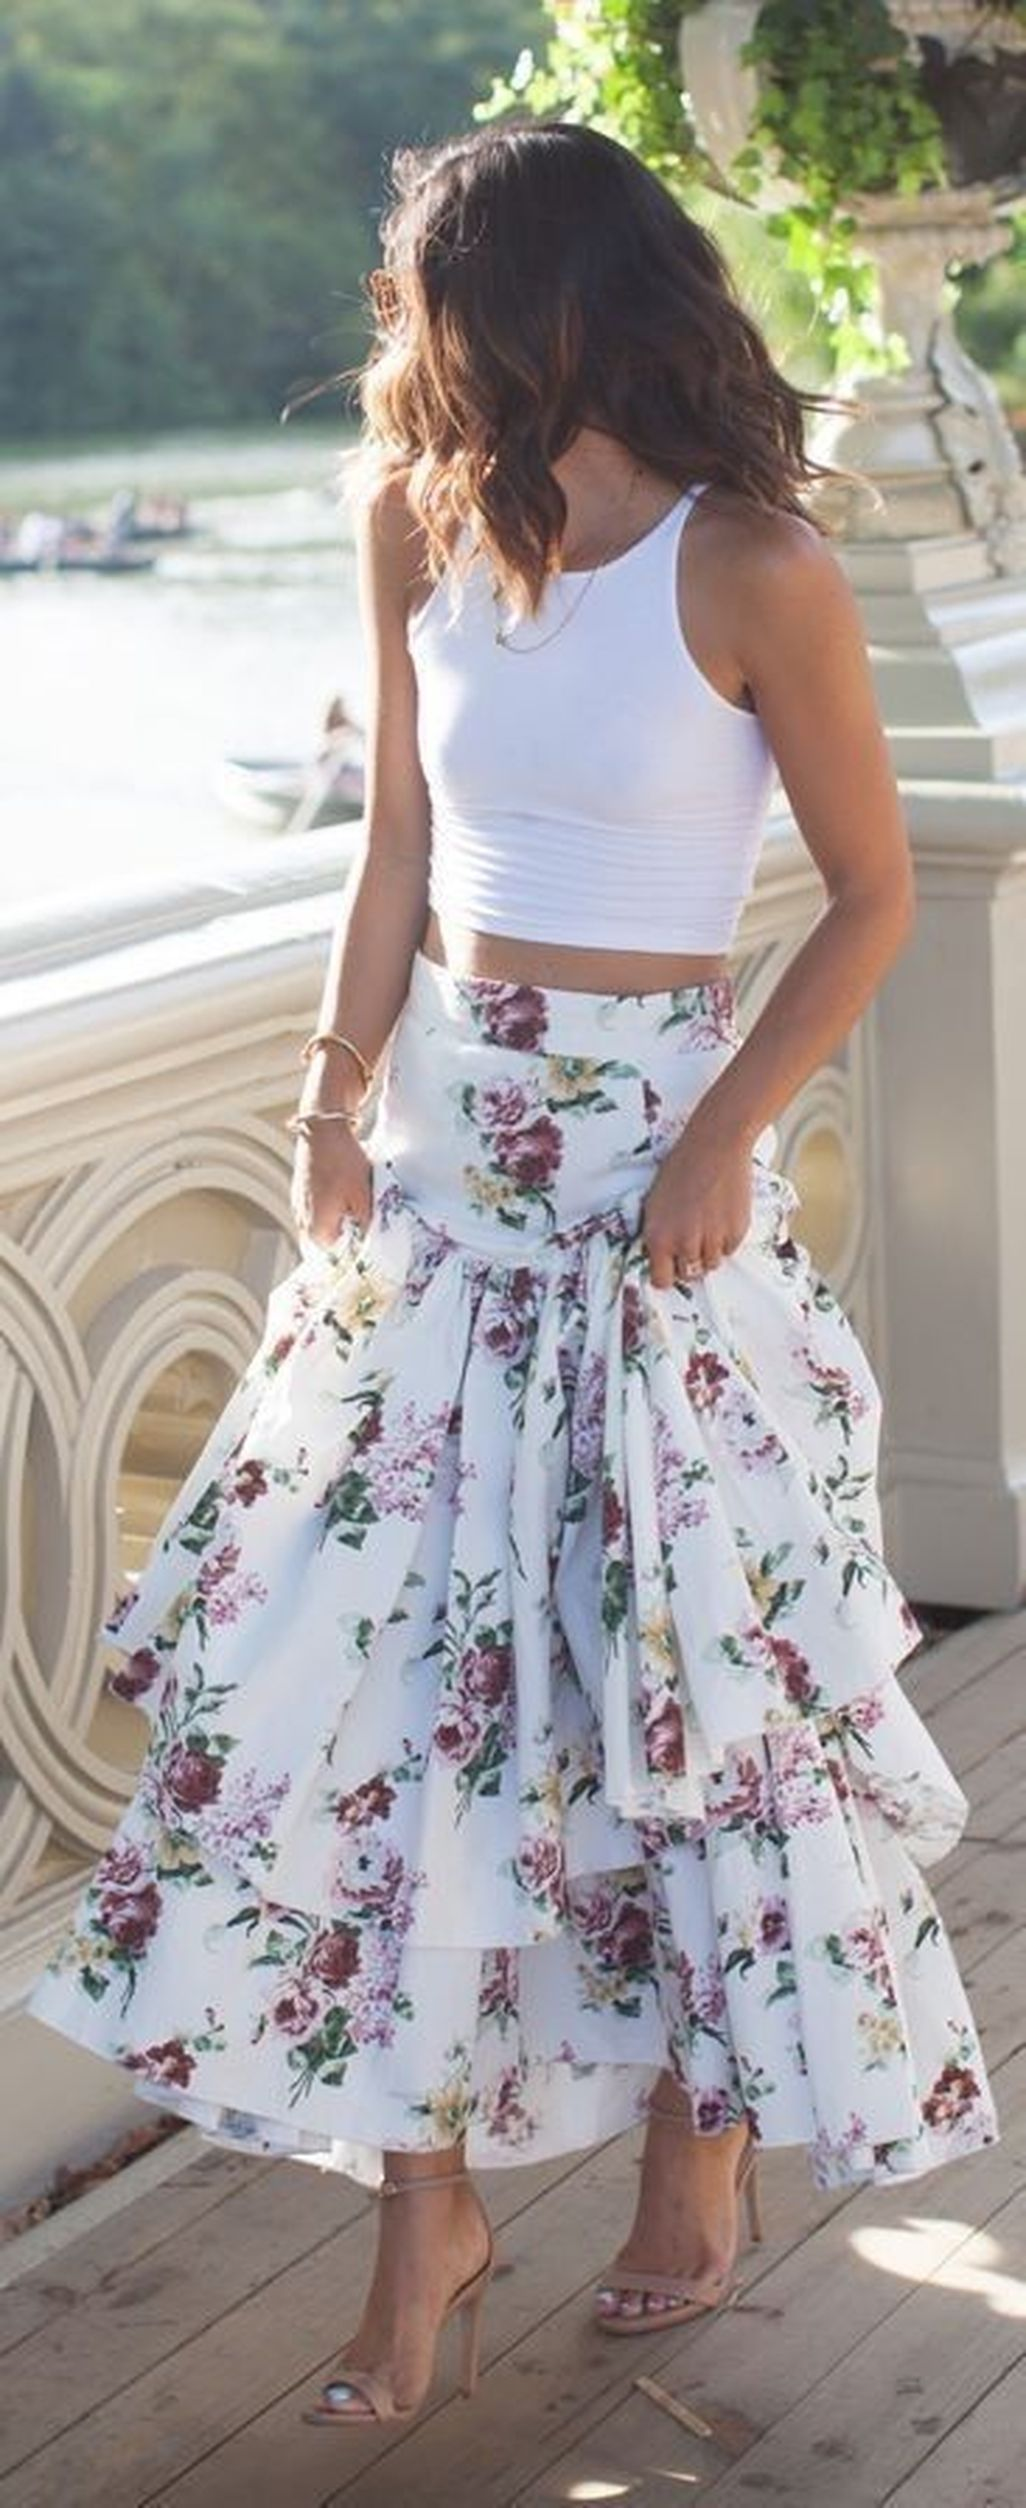 Cool 40 Cute Floral Skirt And Dresses For Spring Outfits 2018. More ...